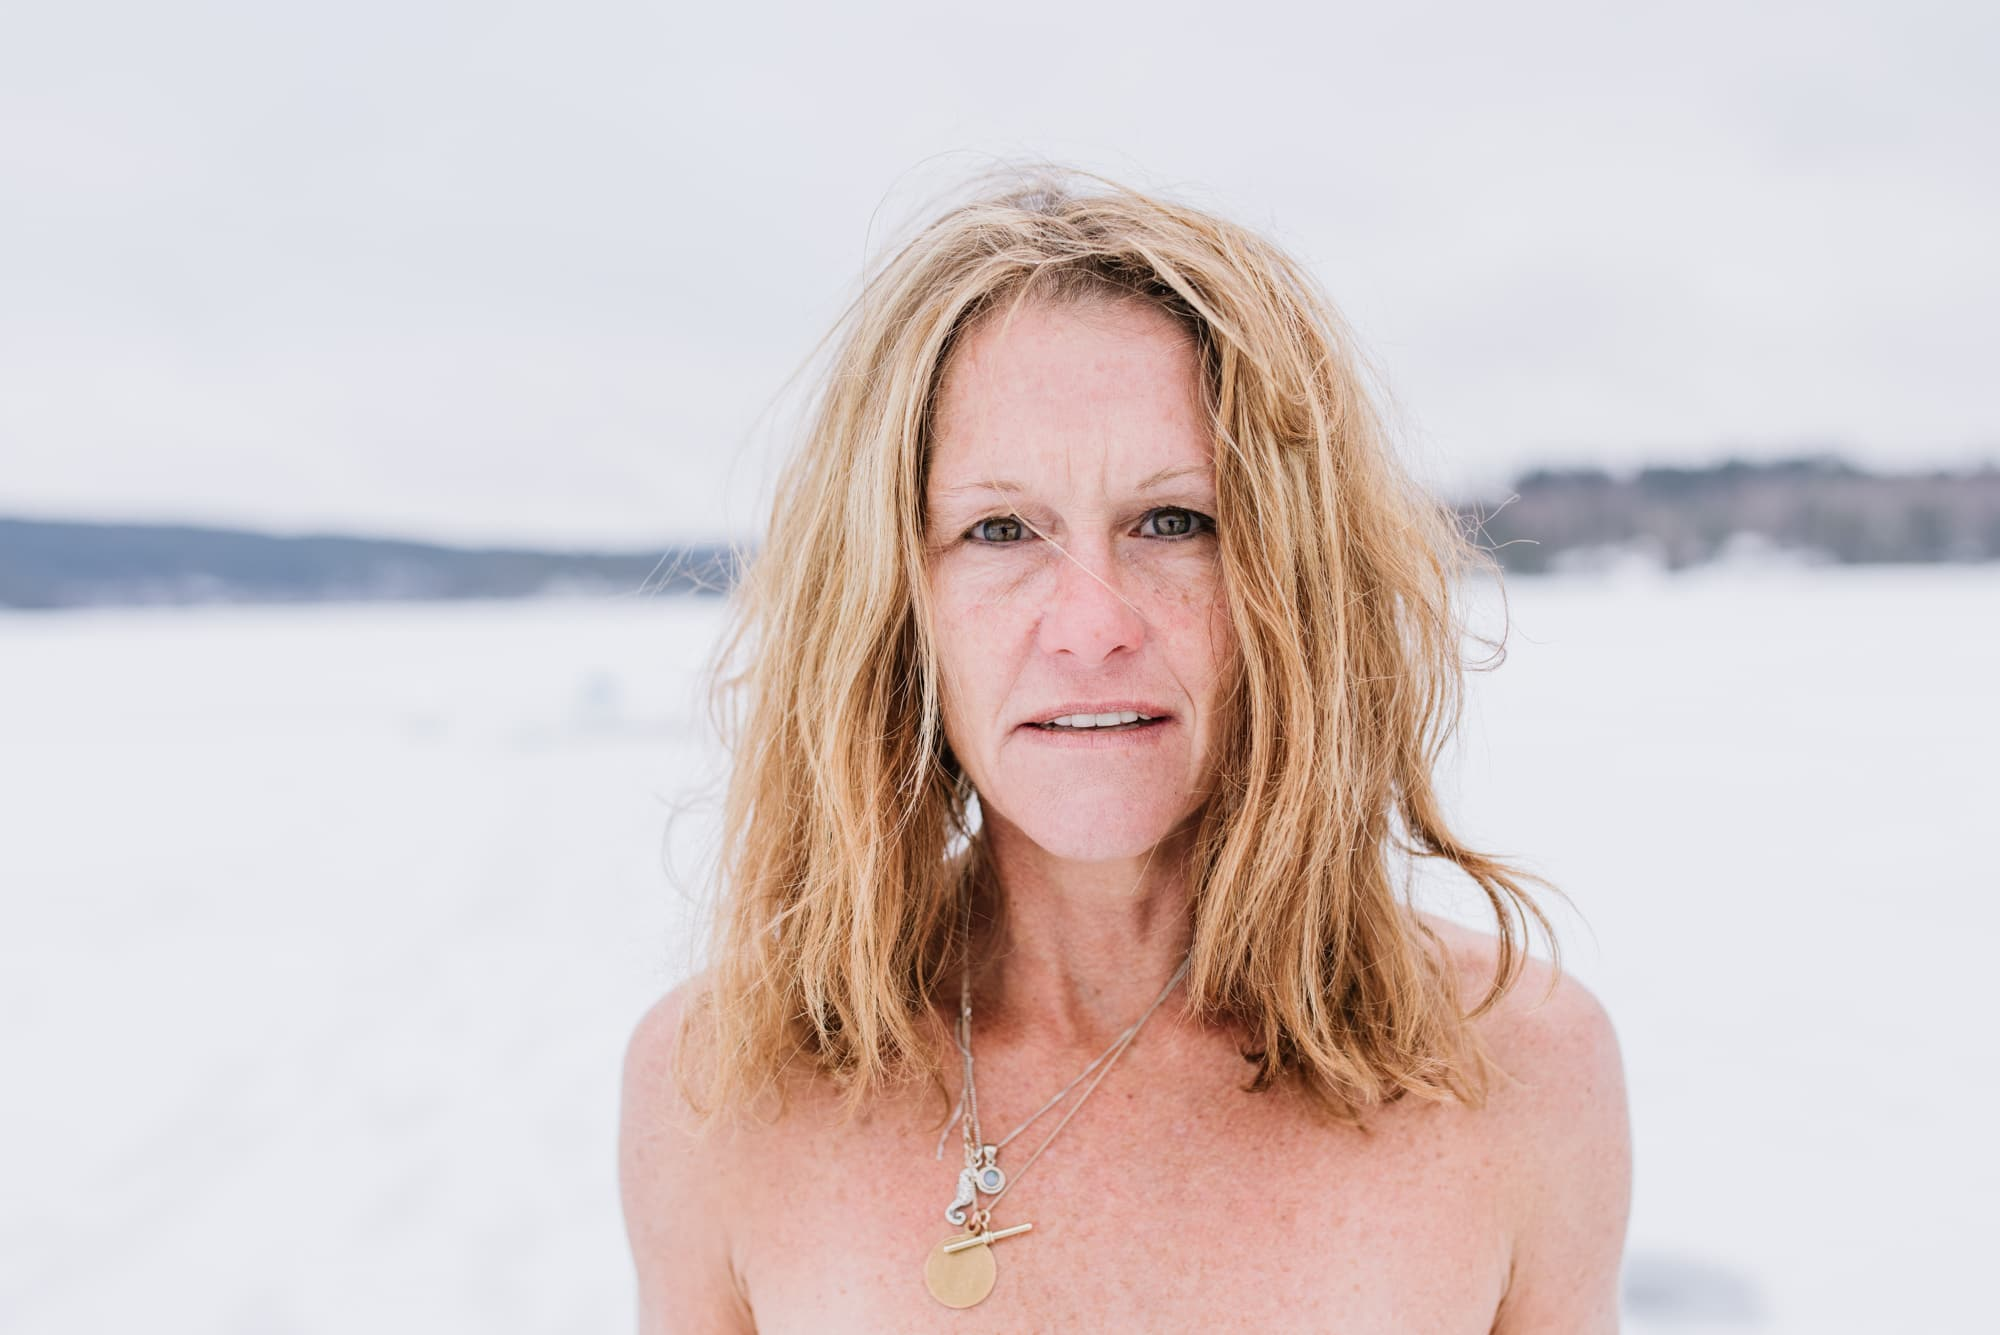 Story on South African freediver Amber Fillary trying to break the Guinness world record on March 21st, 2019, for diving 60 m under solid ice in nothing but a bikini.